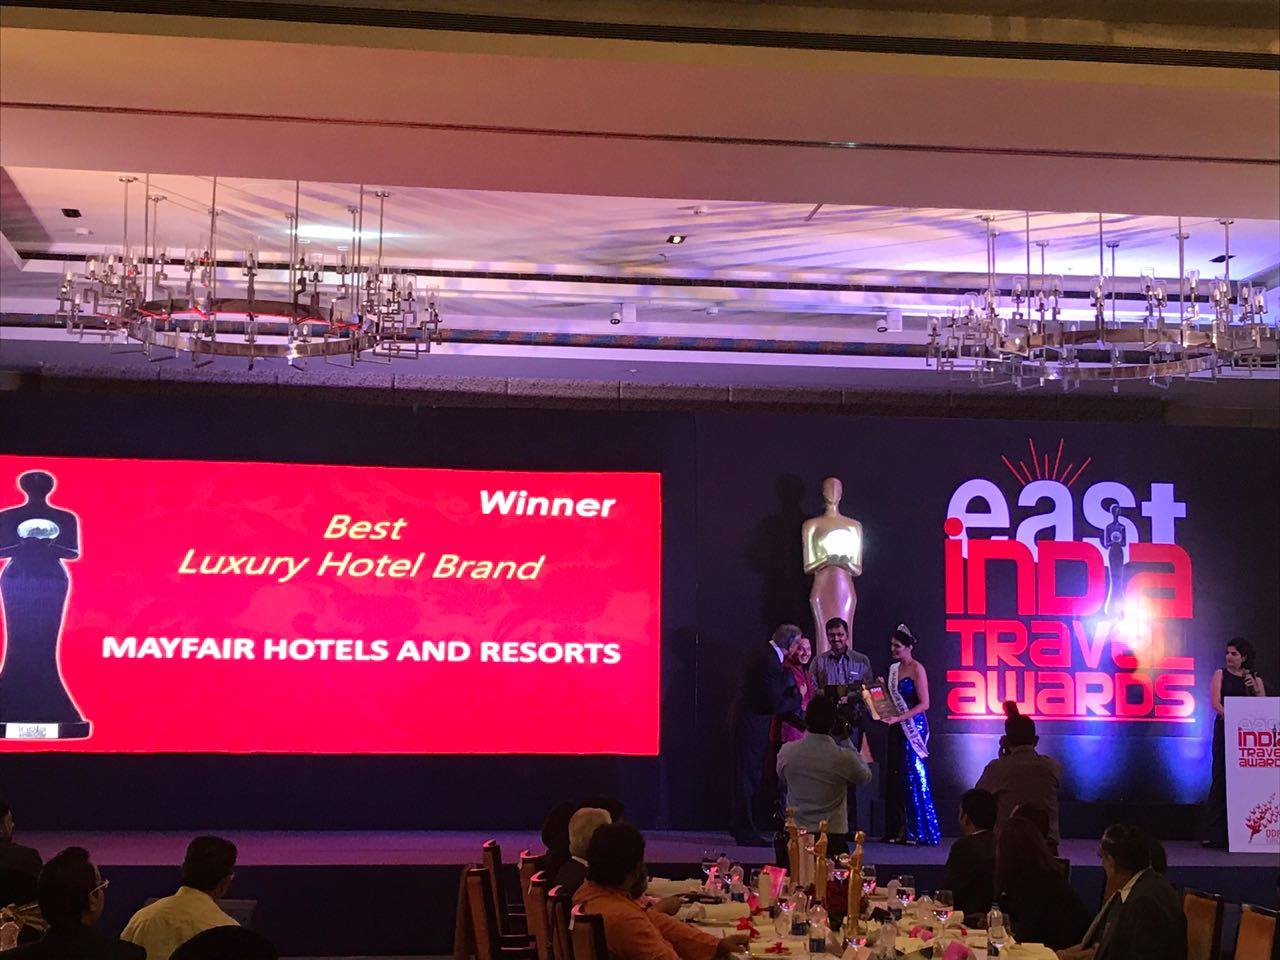 East India Travel Awards,  MAYFAIR Hotels & Resorts